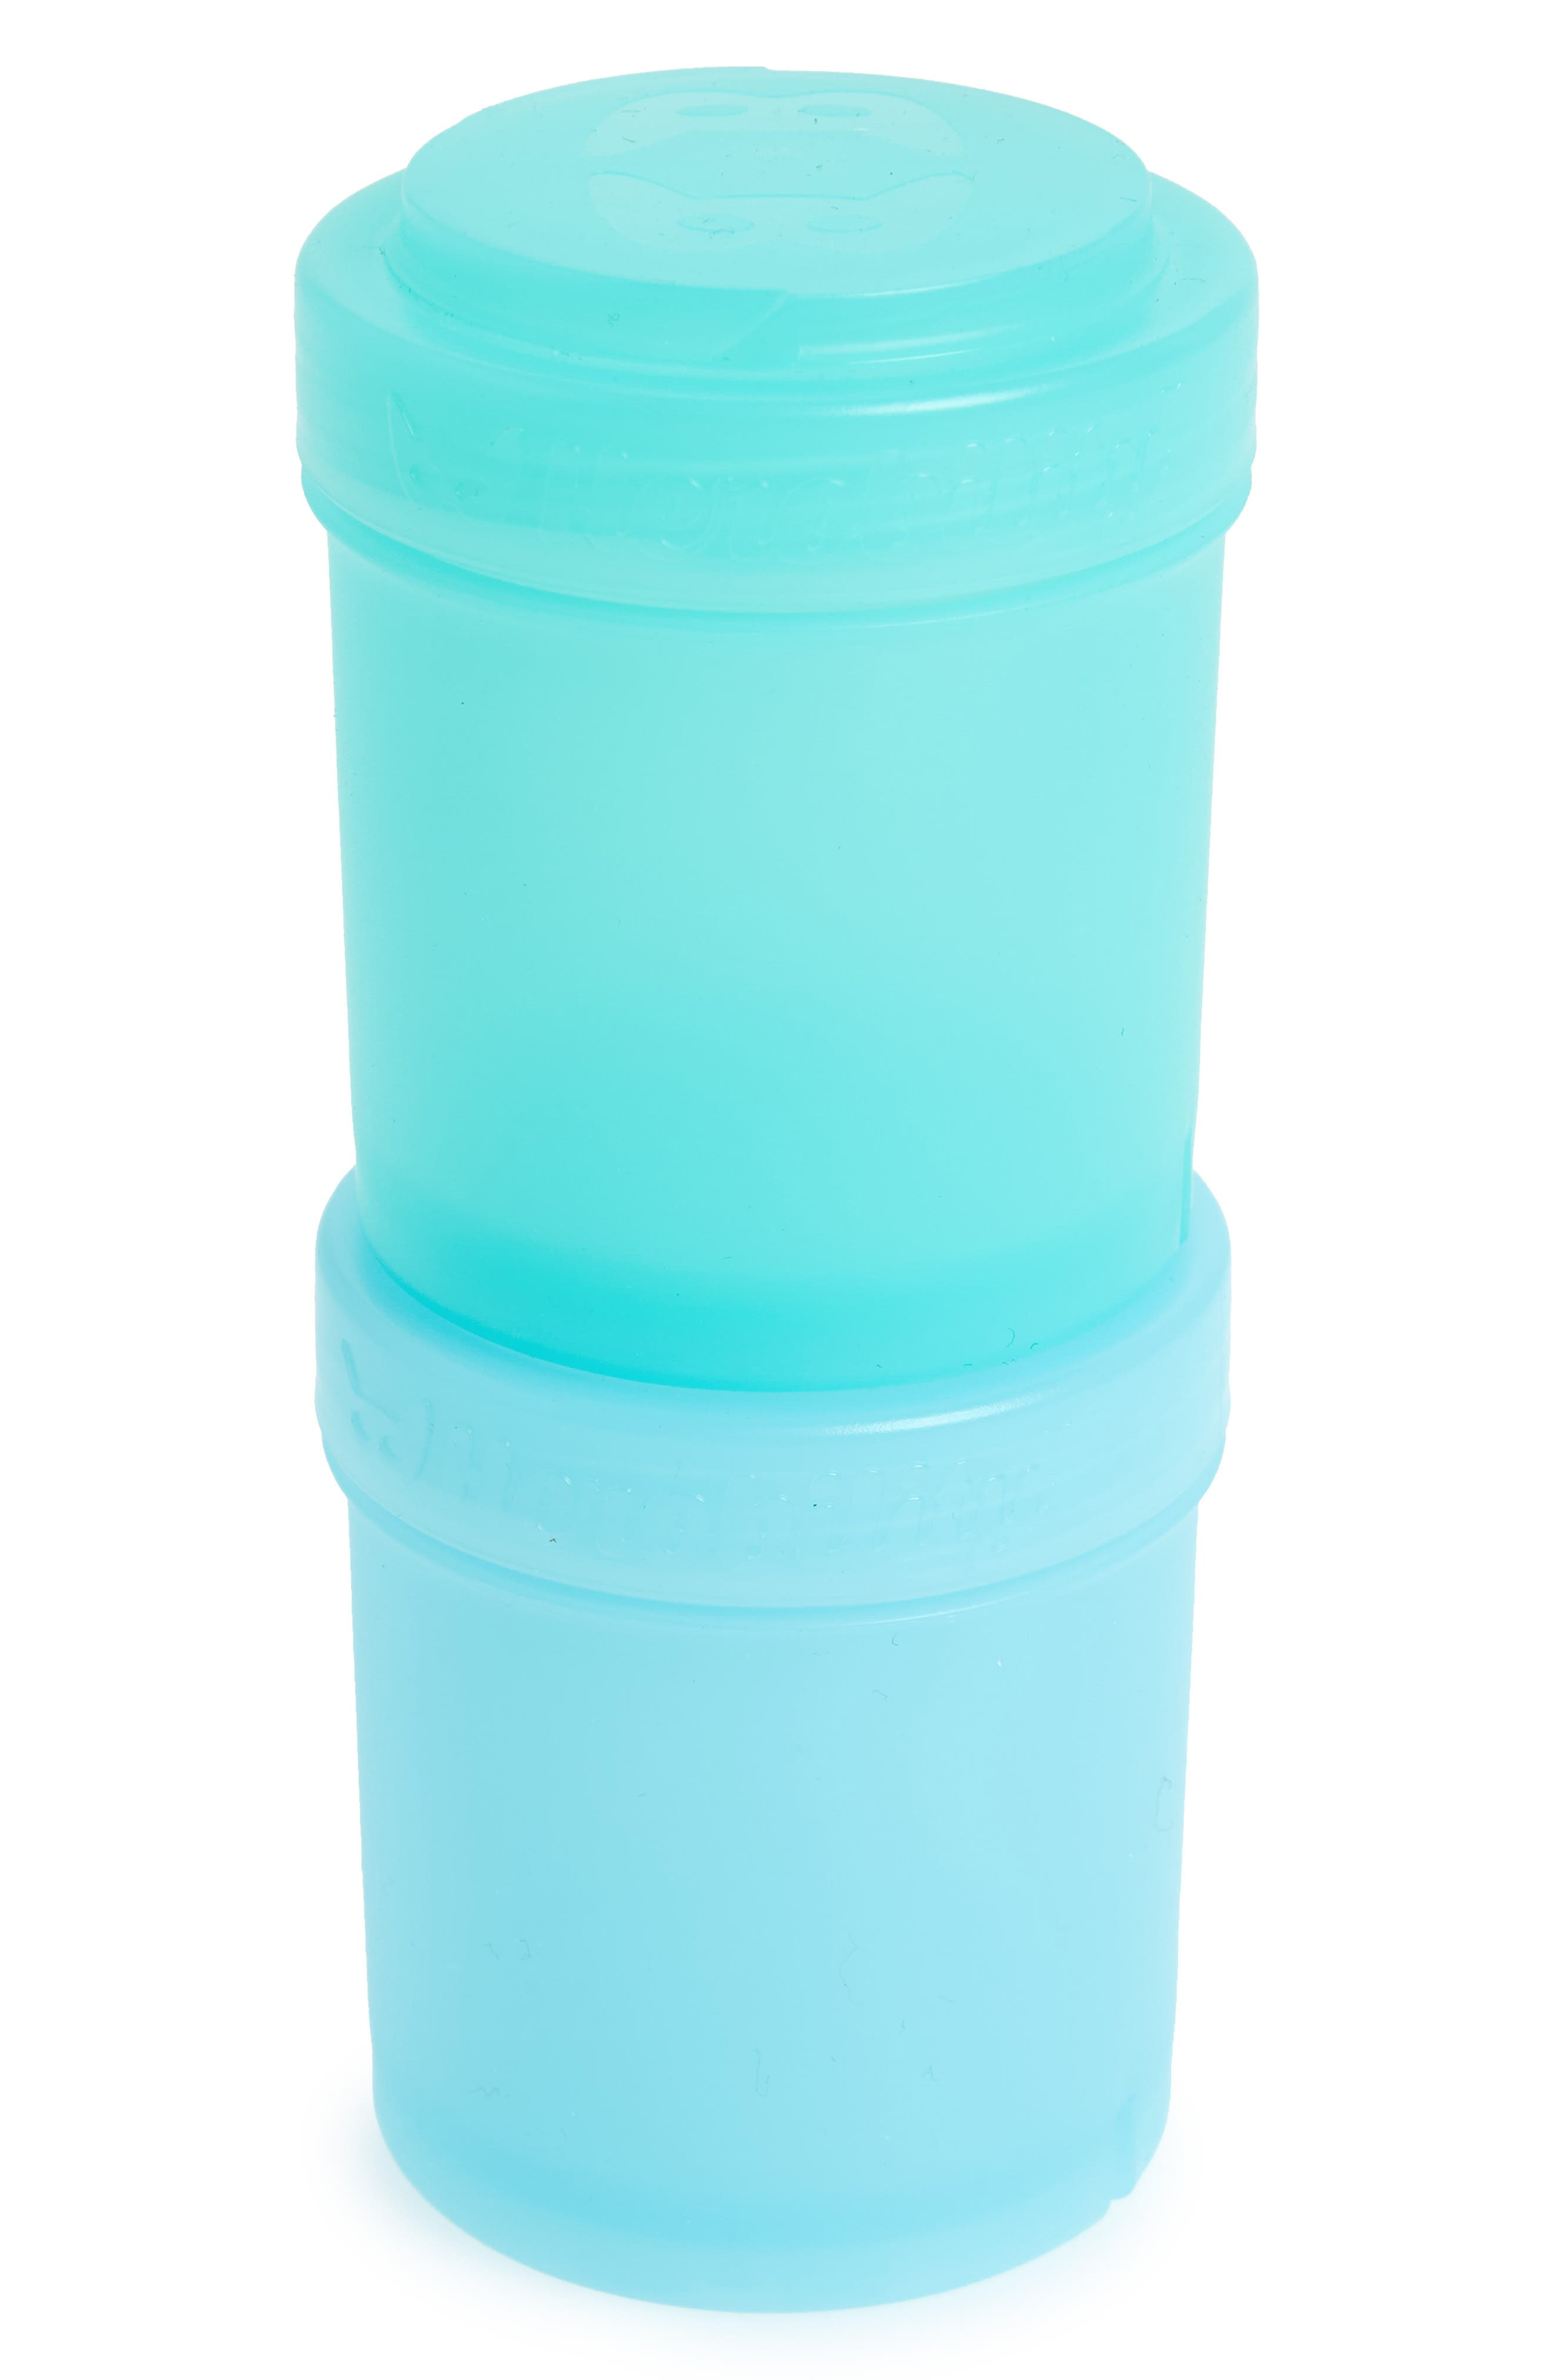 Set of 2 HeroStorage Food Compartments,                             Main thumbnail 1, color,                             BLUE/ TURQUOISE